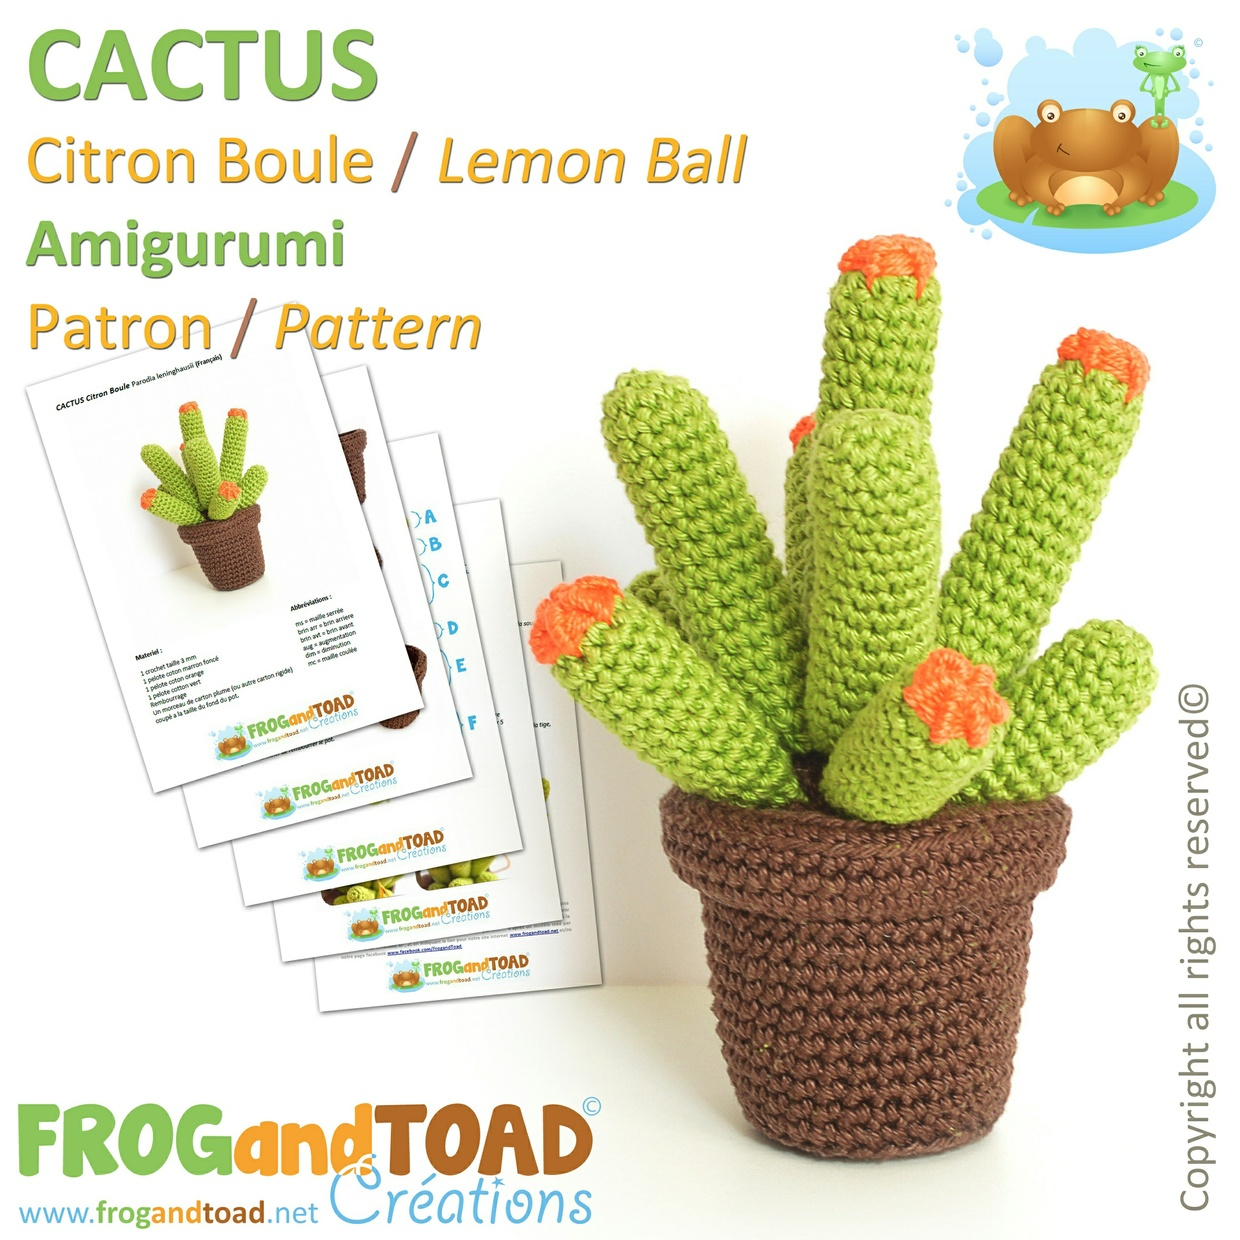 CACTUS Trio Collection - FROGandTOAD Créations ©